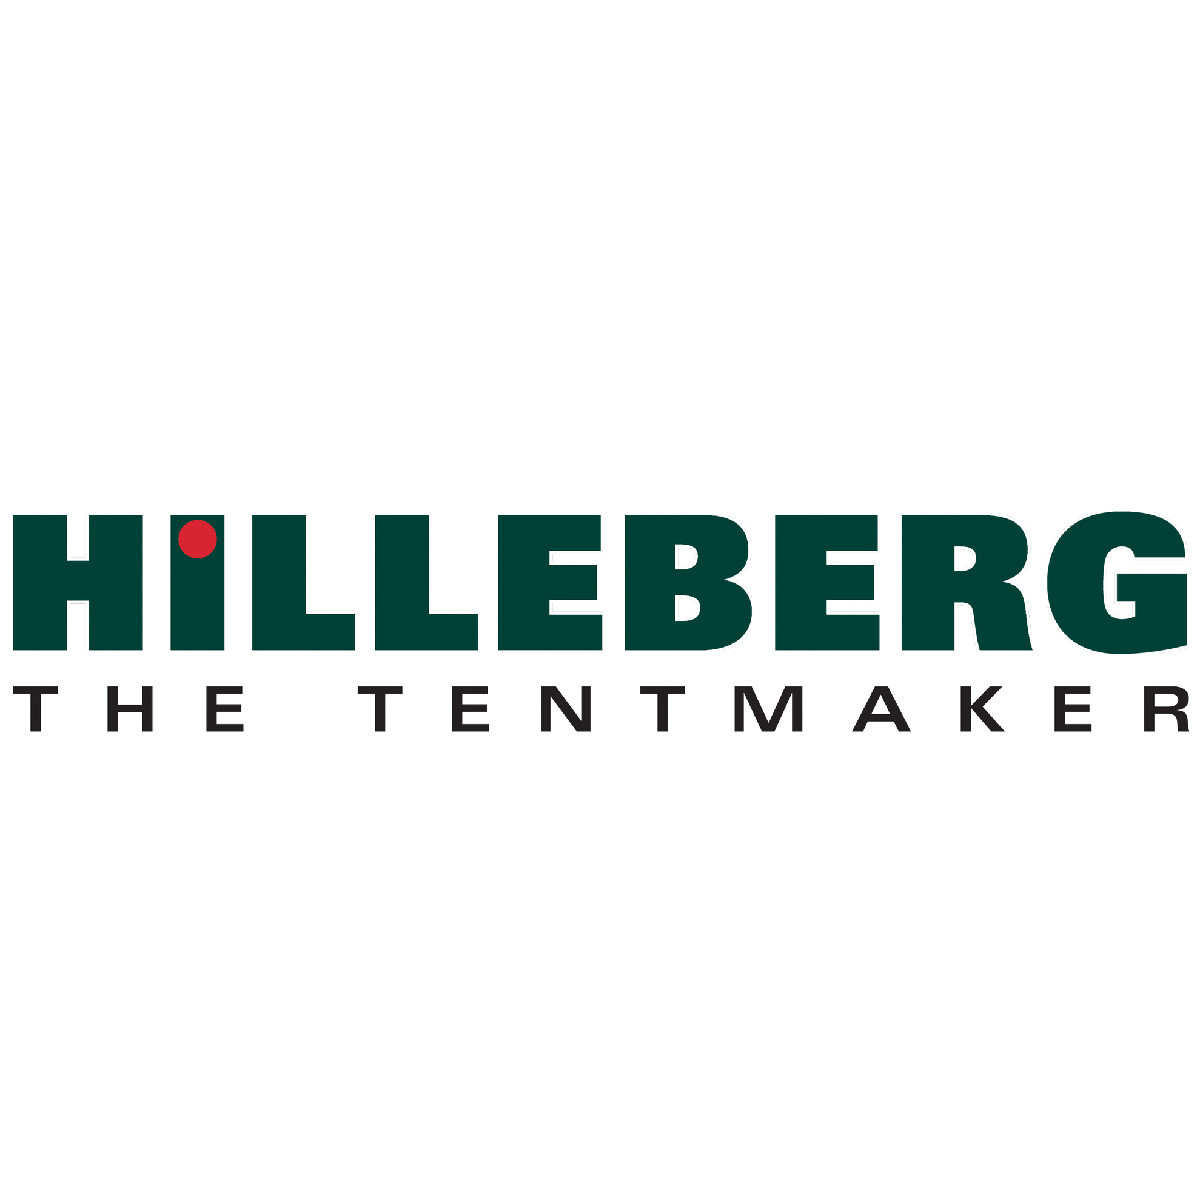 HILLEBERG THE TENTMAKER